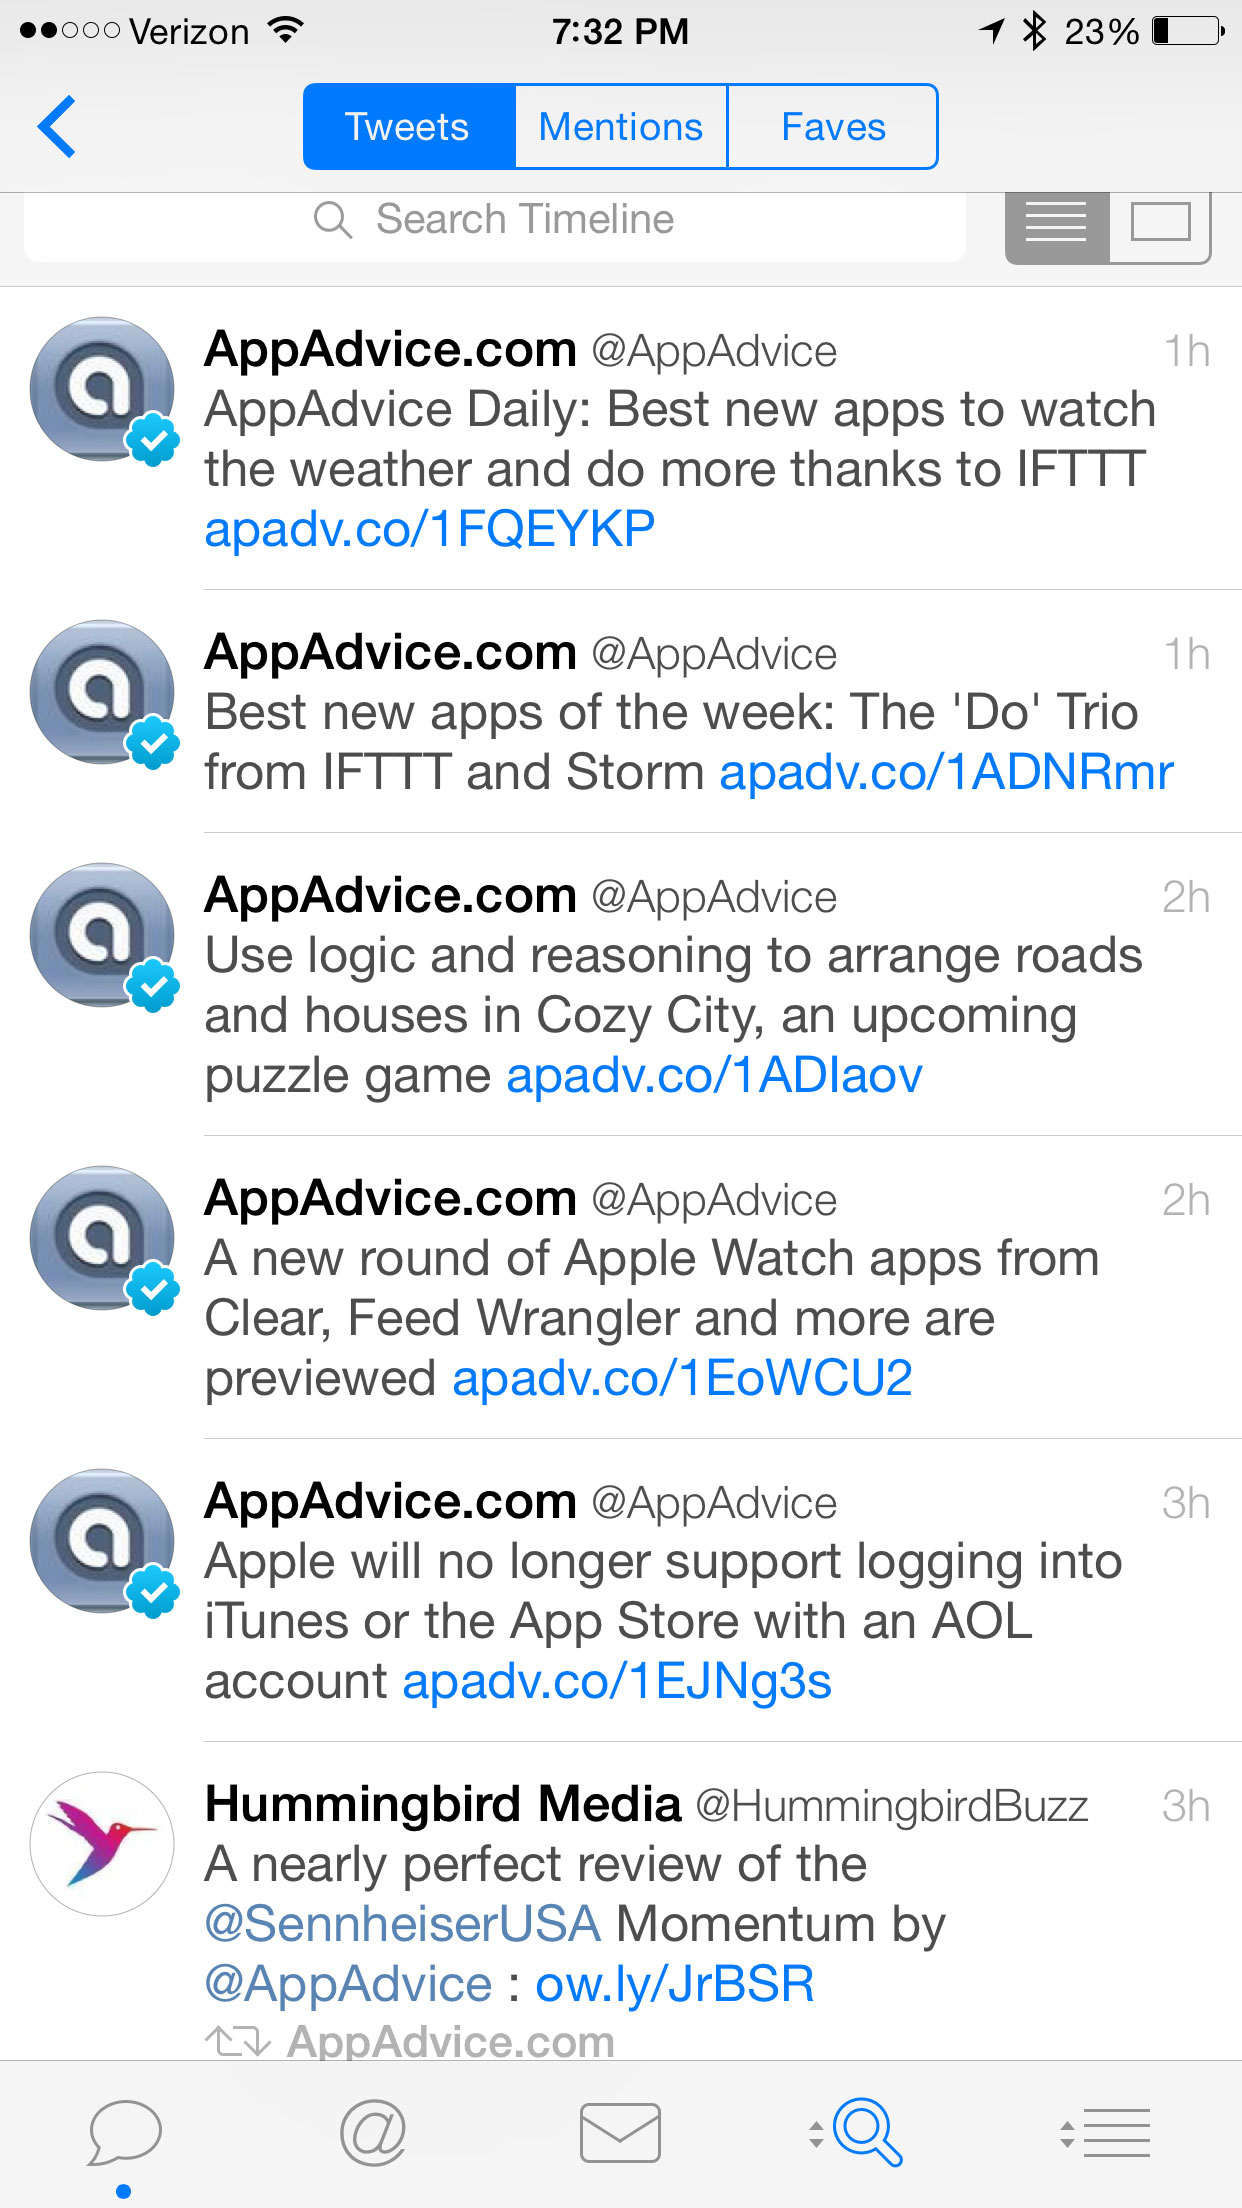 Tweetbot for iPhone updated with support for viewing Twitter Videos and more